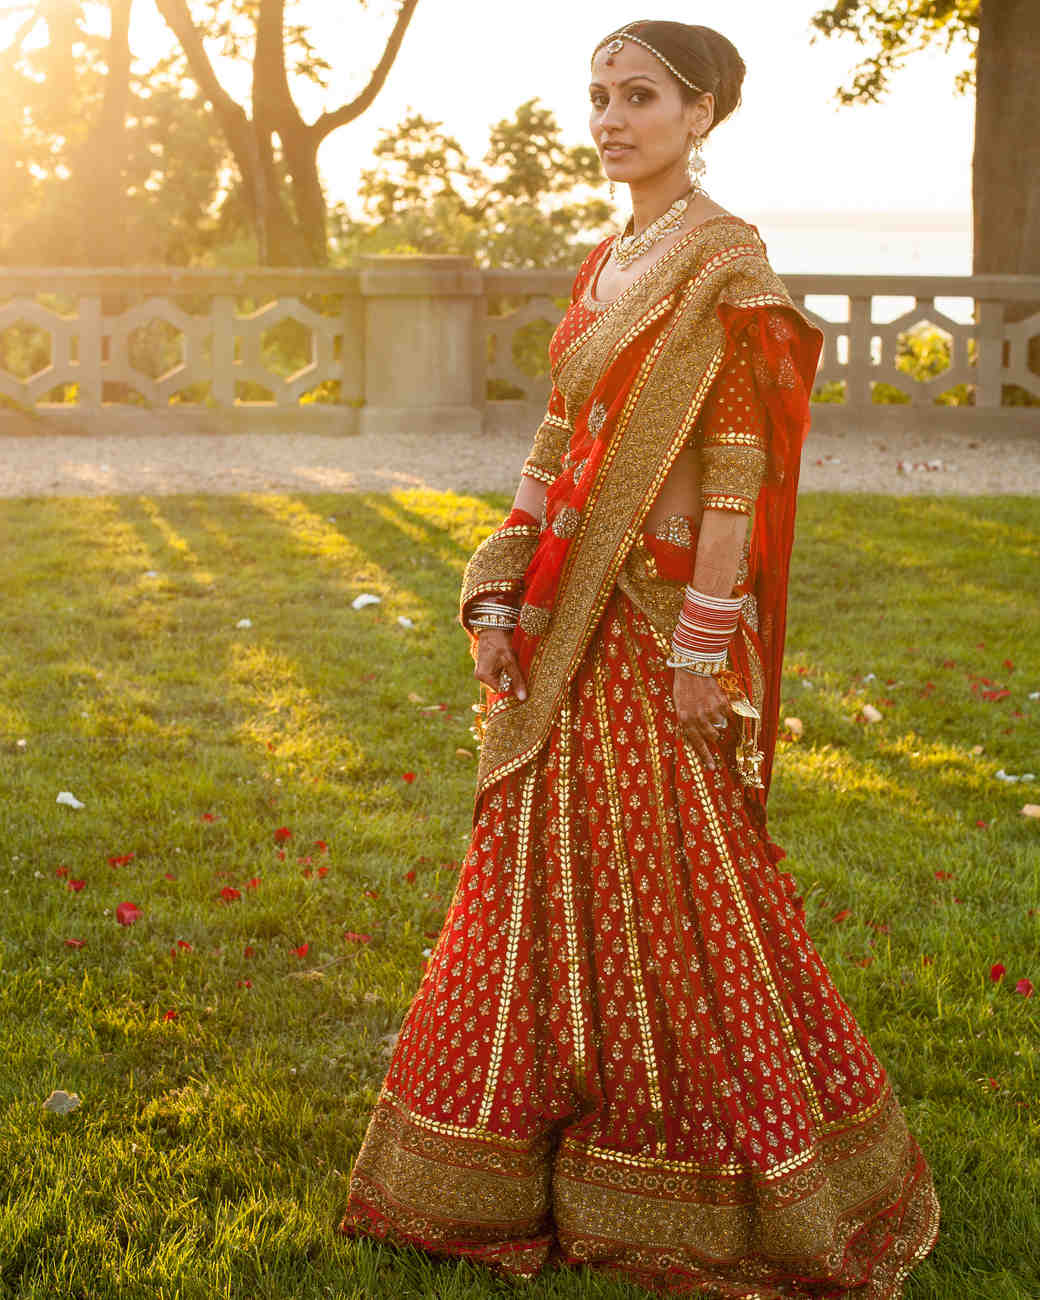 Indian Bride Wearing Red Wedding Dress: Cultural Wedding Dresses Purple And Gold At Reisefeber.org